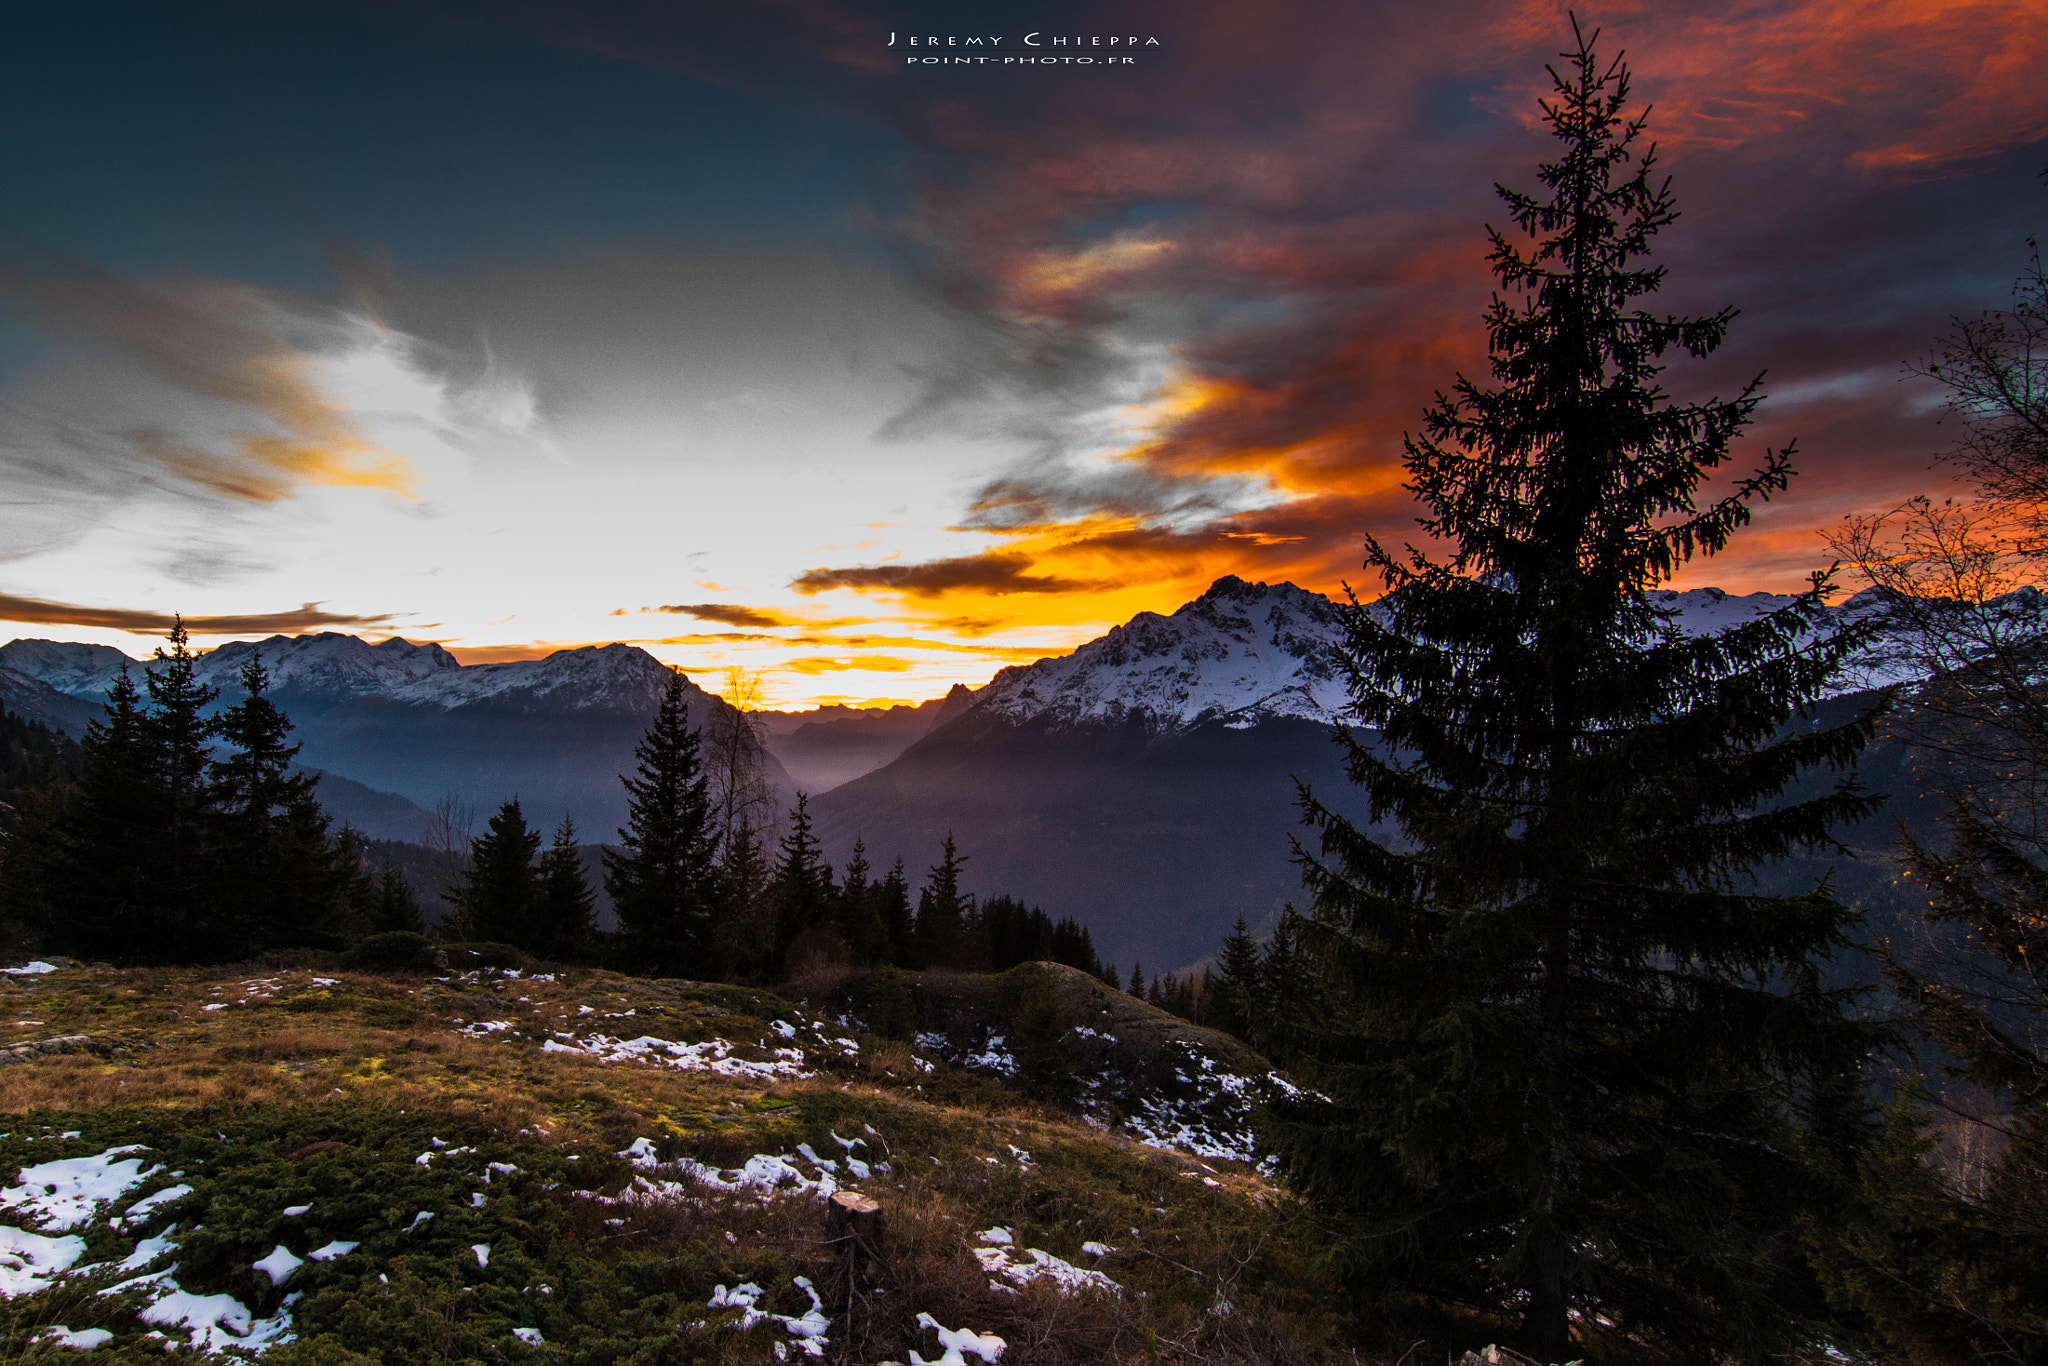 Photograph Sunset in Oisans by Jeremy Chieppa on 500px